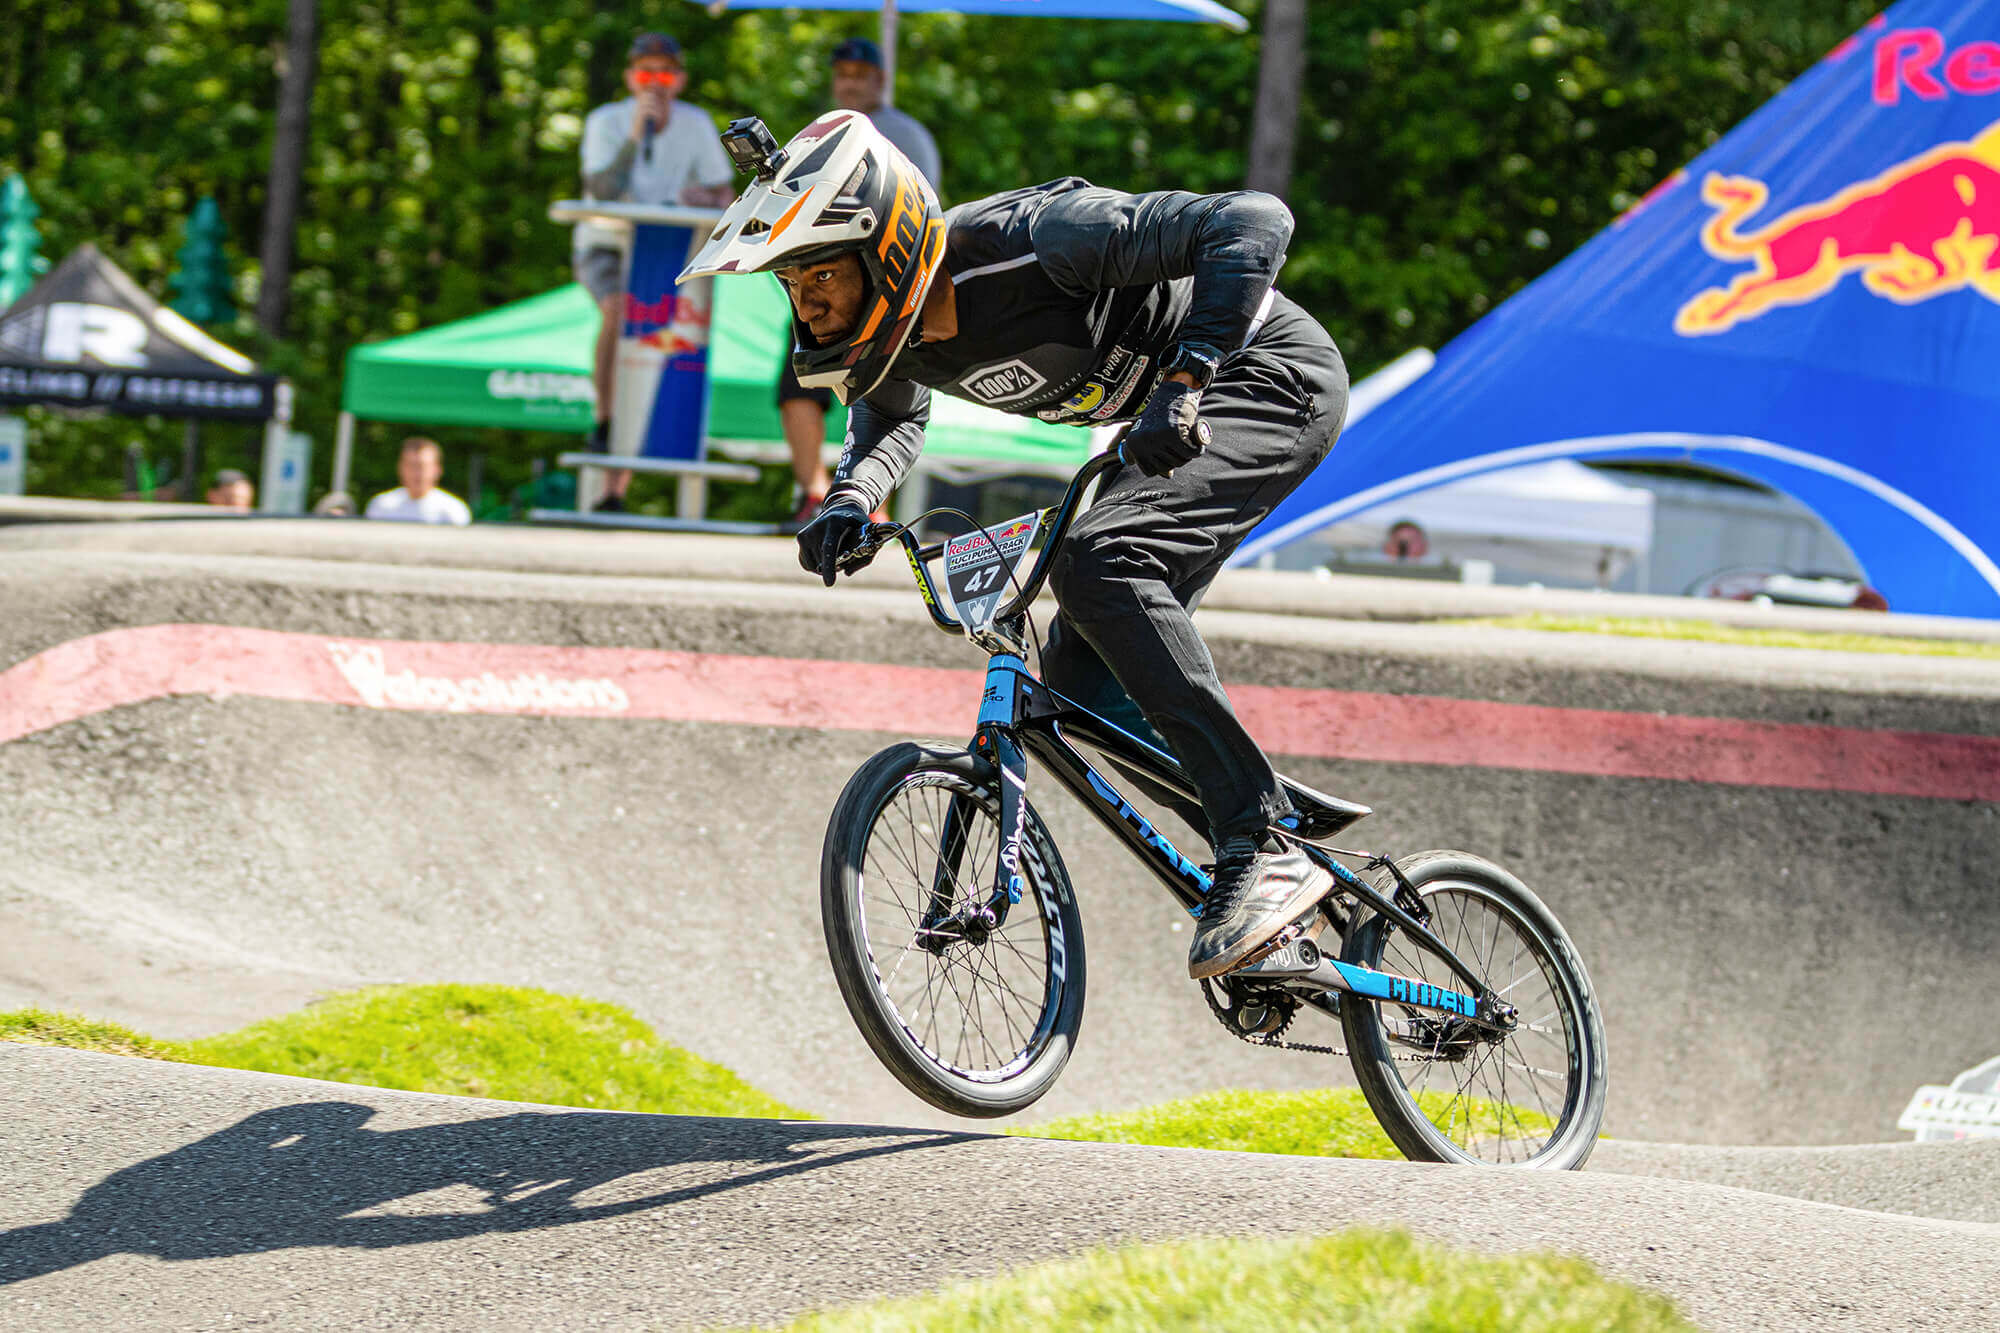 Red Bull Pump Track Qualifier Gaston County May 2021 - Brian Hall - ATL-0031